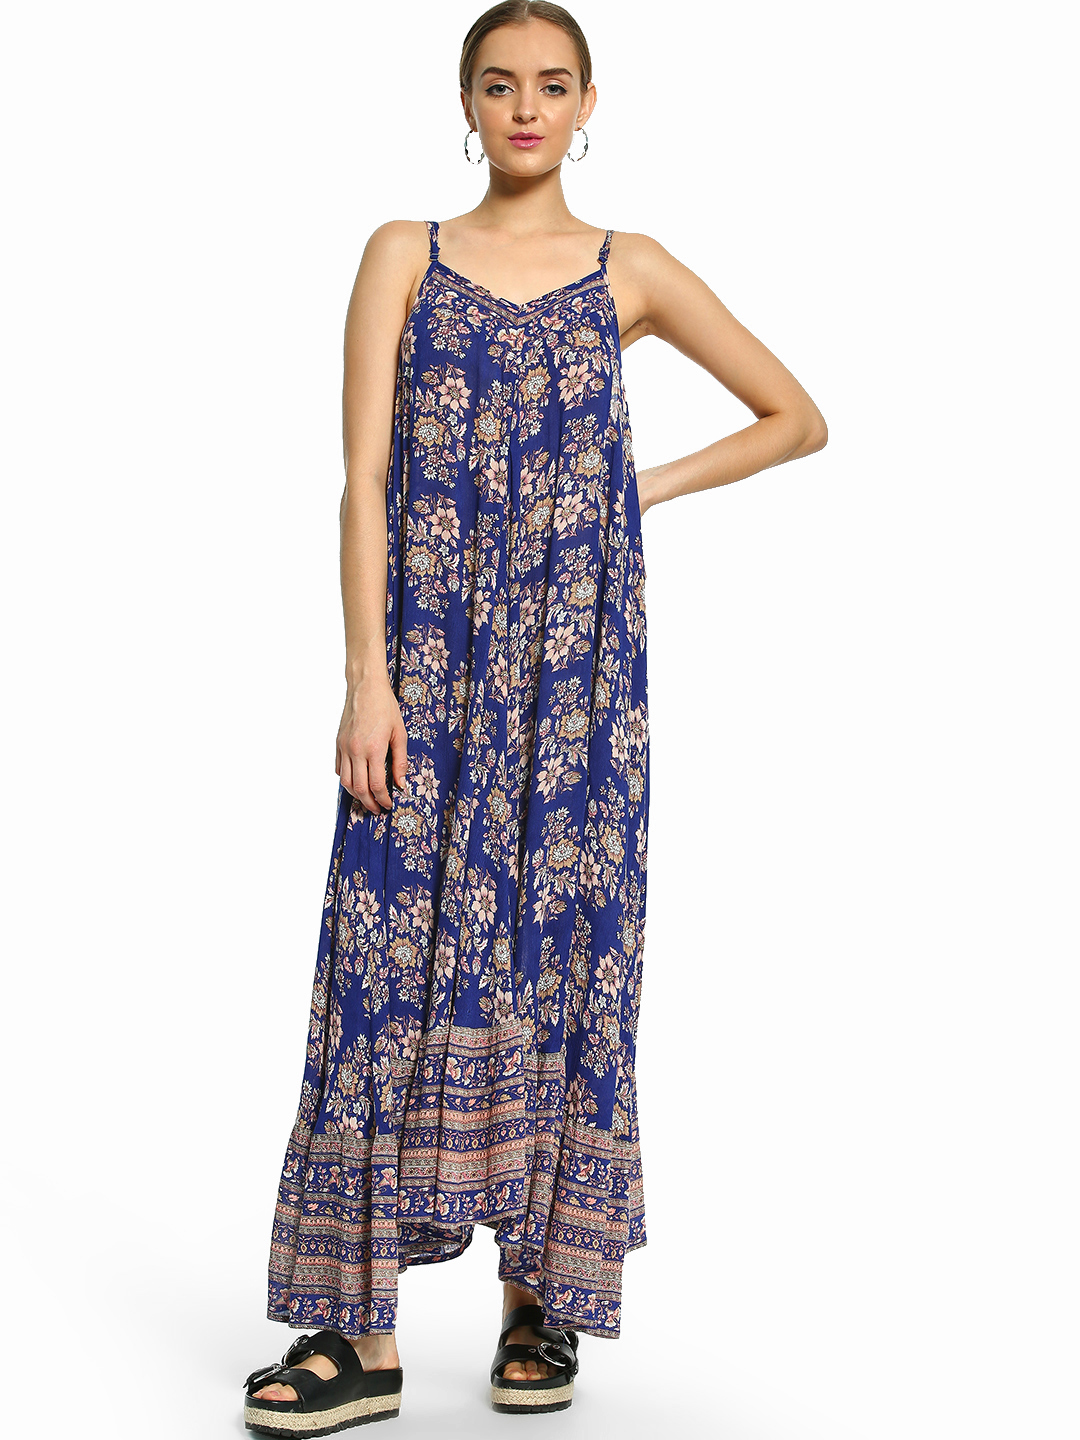 Kisscoast Blue Floral Print Maxi Dress 1